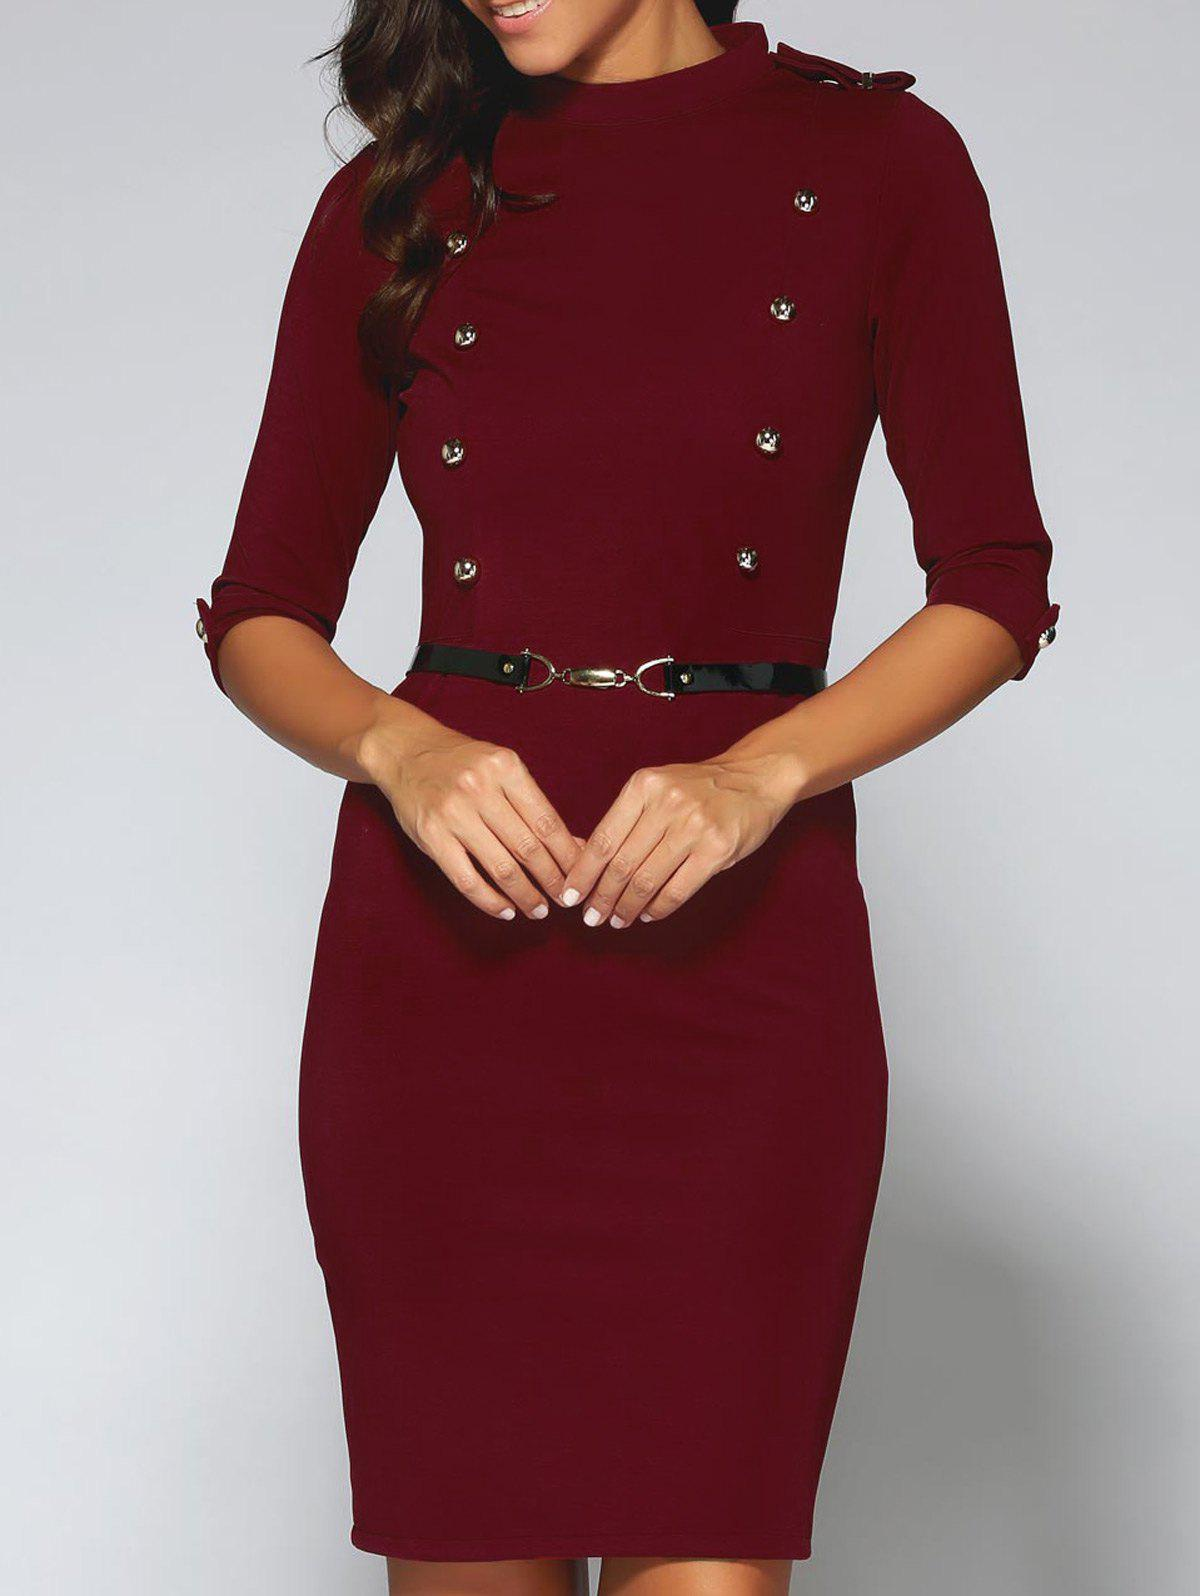 Belted Double-Breasted Work Sheath DressWomen<br><br><br>Size: XL<br>Color: RED